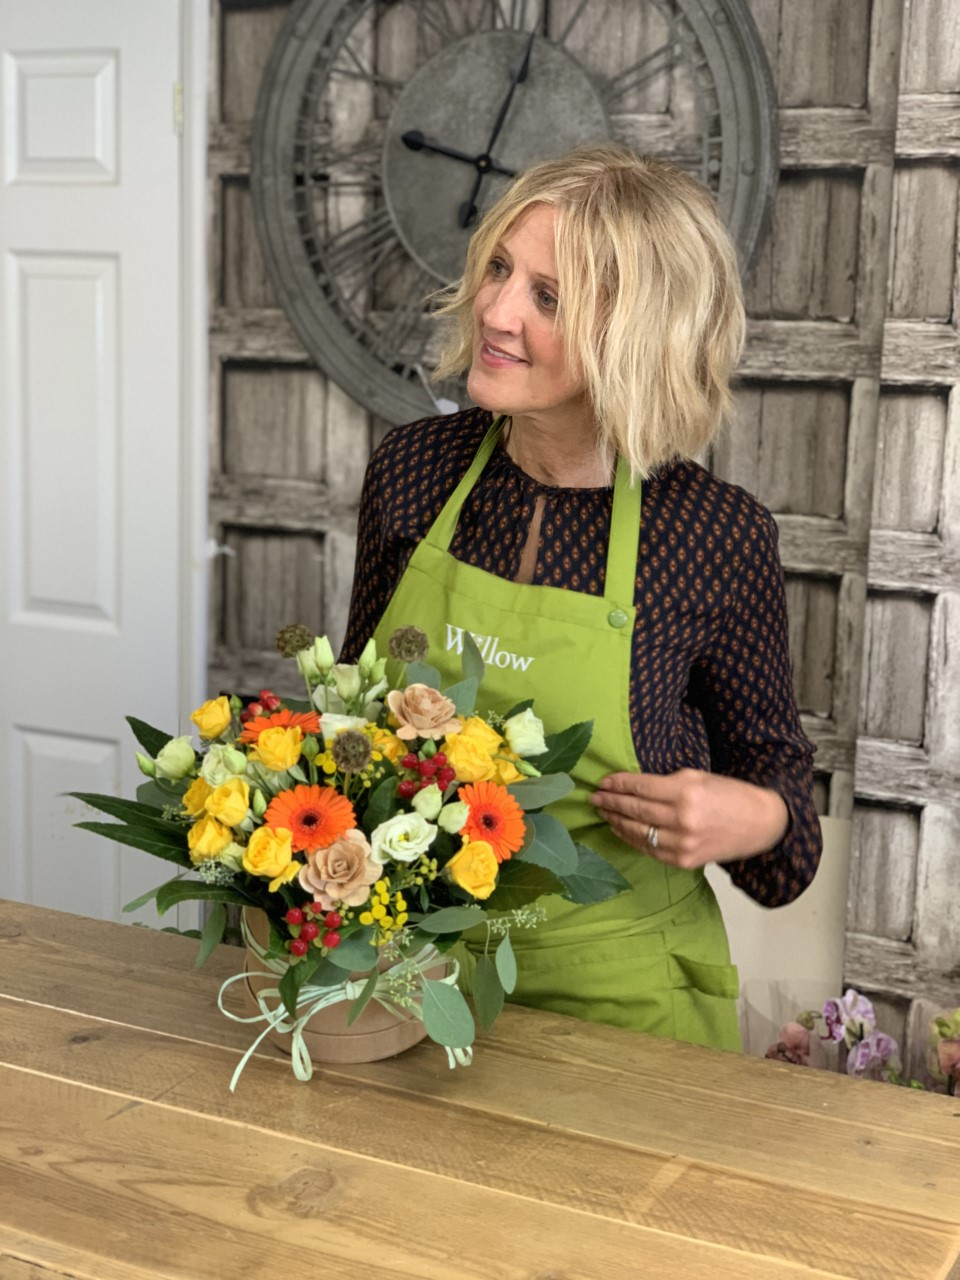 In this image, Diane is wearing a green apron and is tending to a bouquet full of white, orange and yellow flowers.